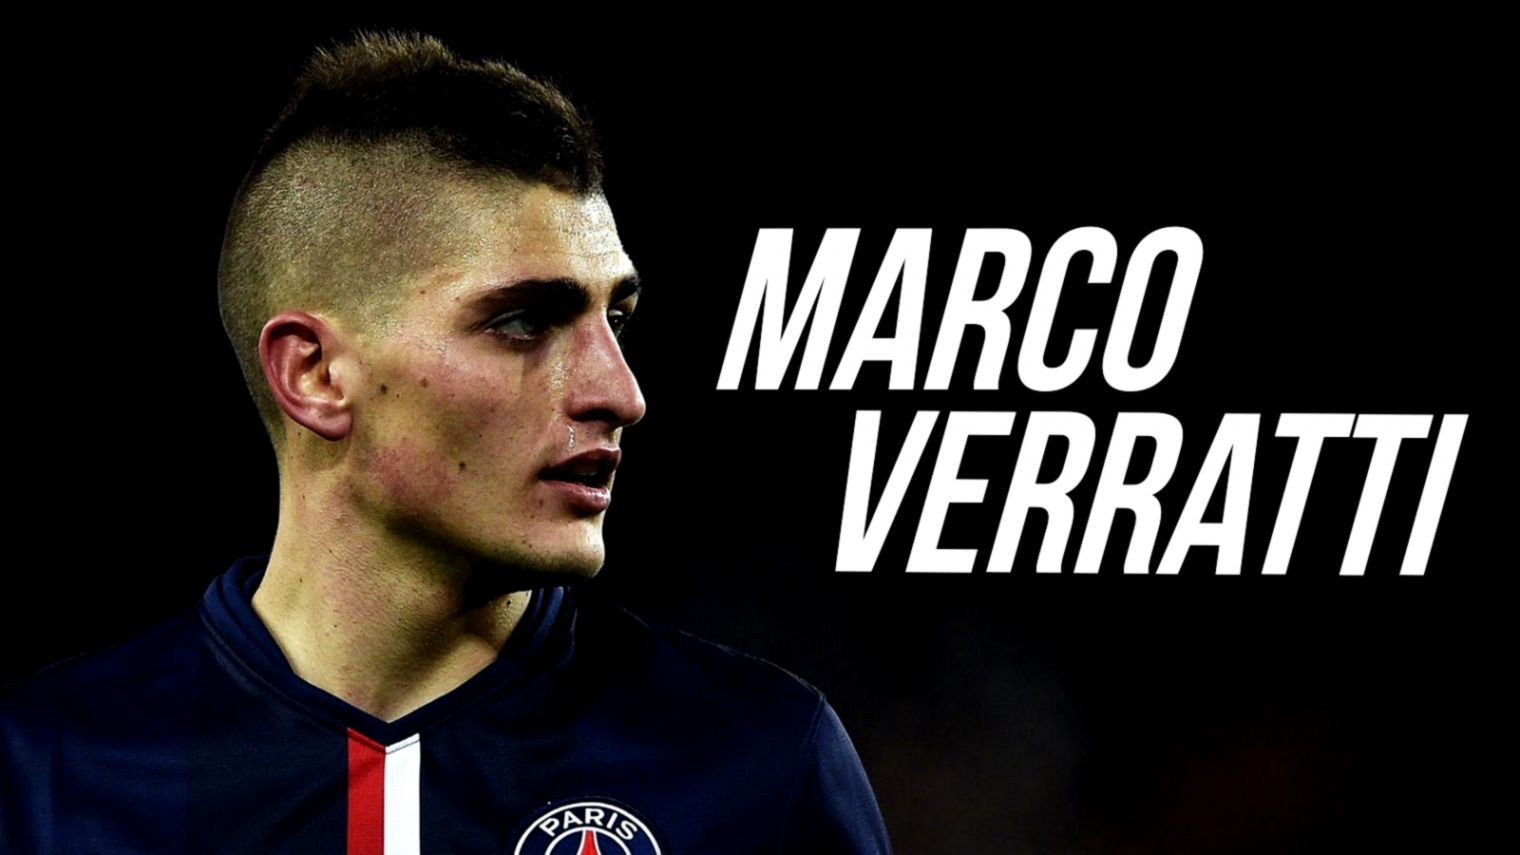 Marco Verratti Psg 2015 Hd Wallpaper